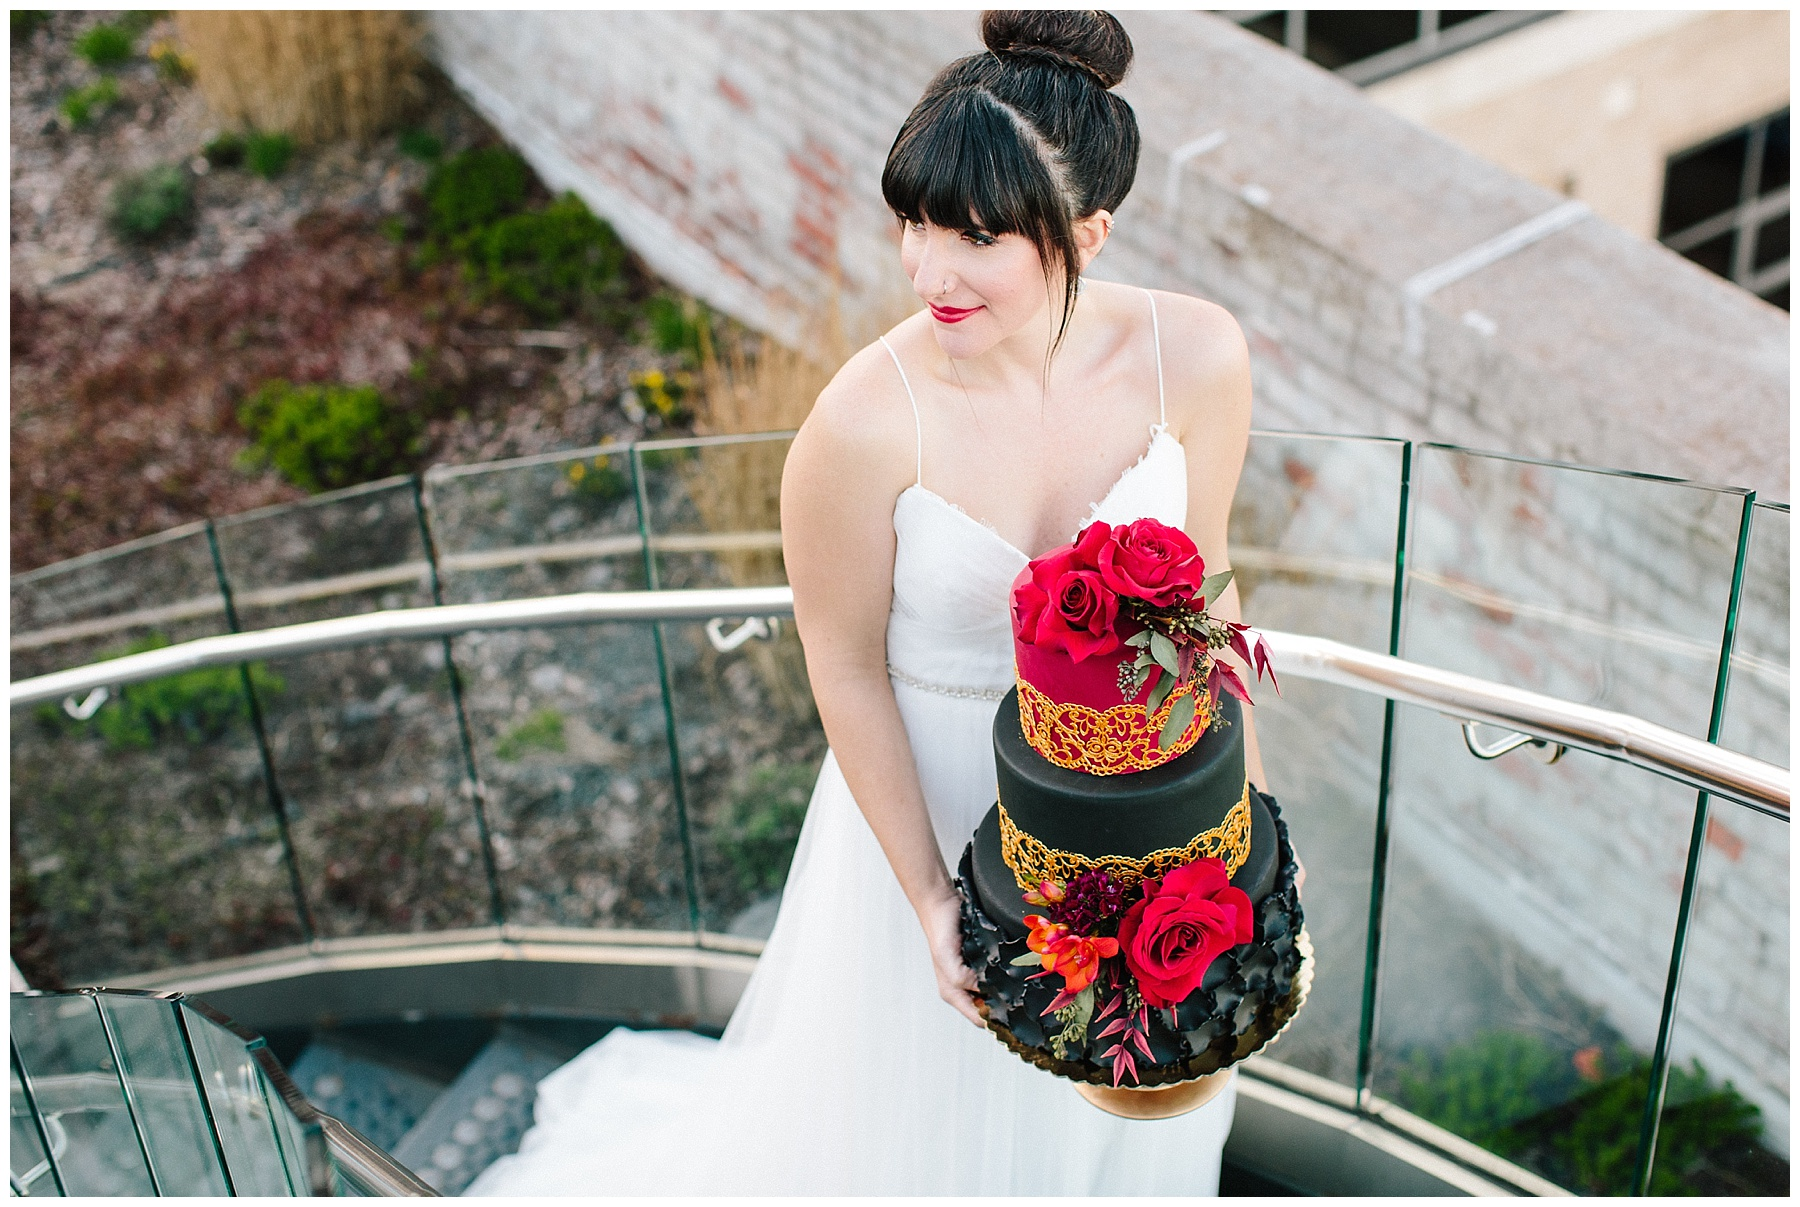 rooftop wedding inspiration, roanoke wedding, chelsea anderson photography, misty saves the day, cara cait create, studio i do bridals roanoke, studio i do, black and gold wedding